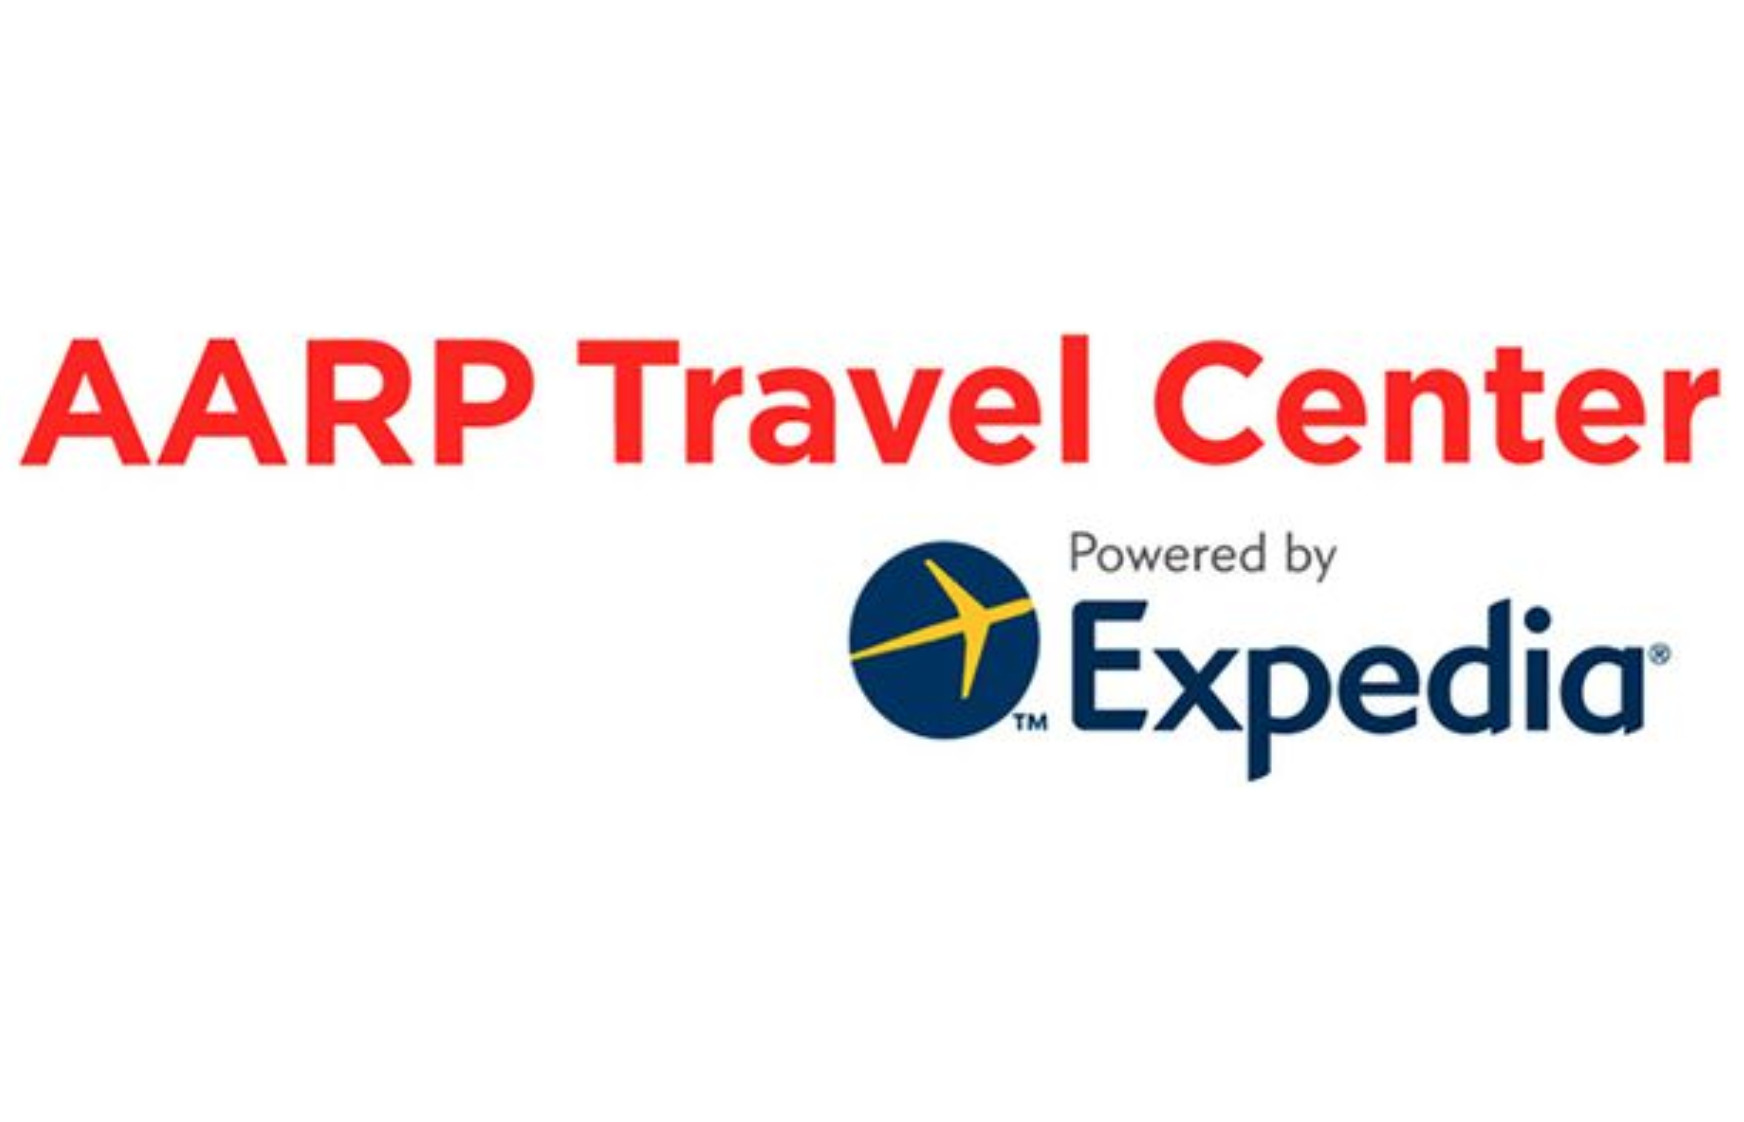 Slide 11 of 33: Having an AARP membership gives you access to a travel booking portal, powered by Expedia, where you'll get up to $349 off of flight and hotel vacation packages.